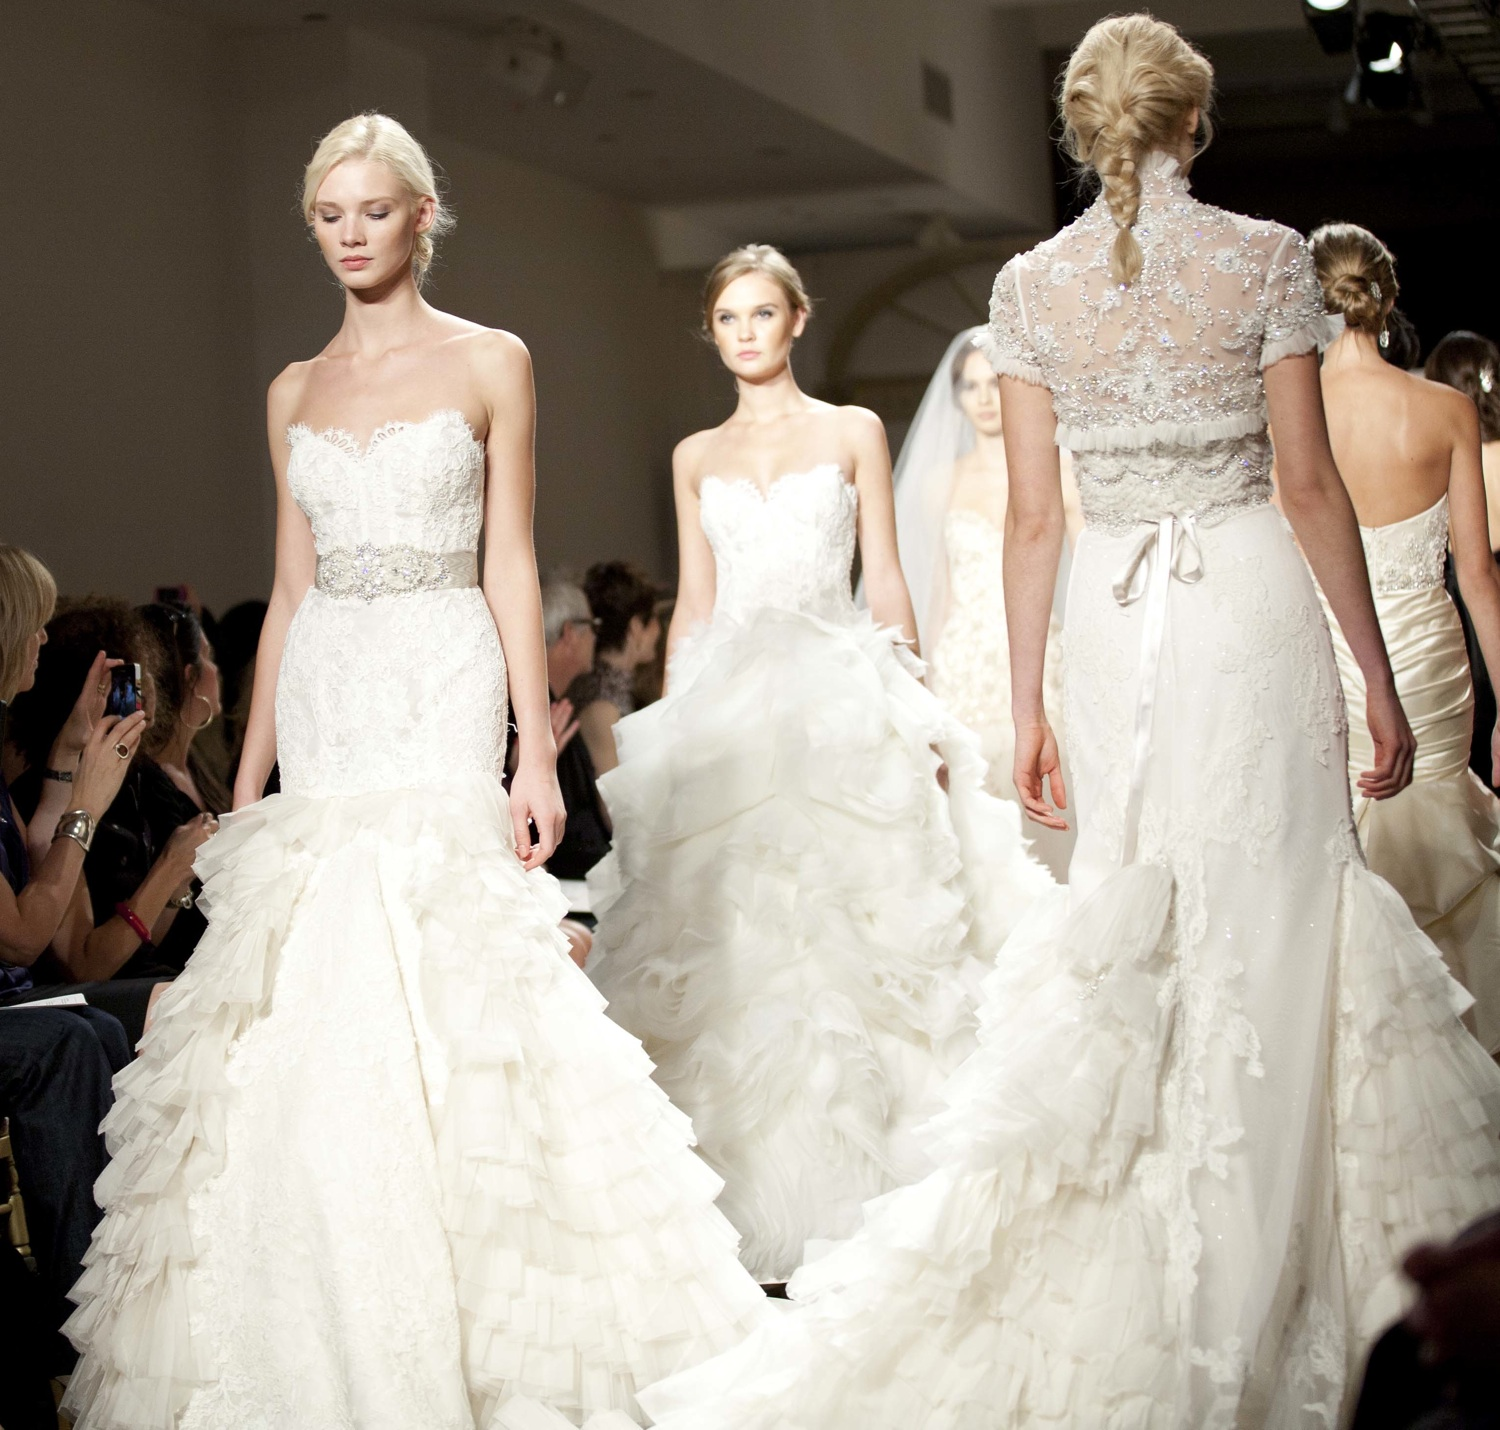 Tara-keely-wedding-dresses-spring-2012.original